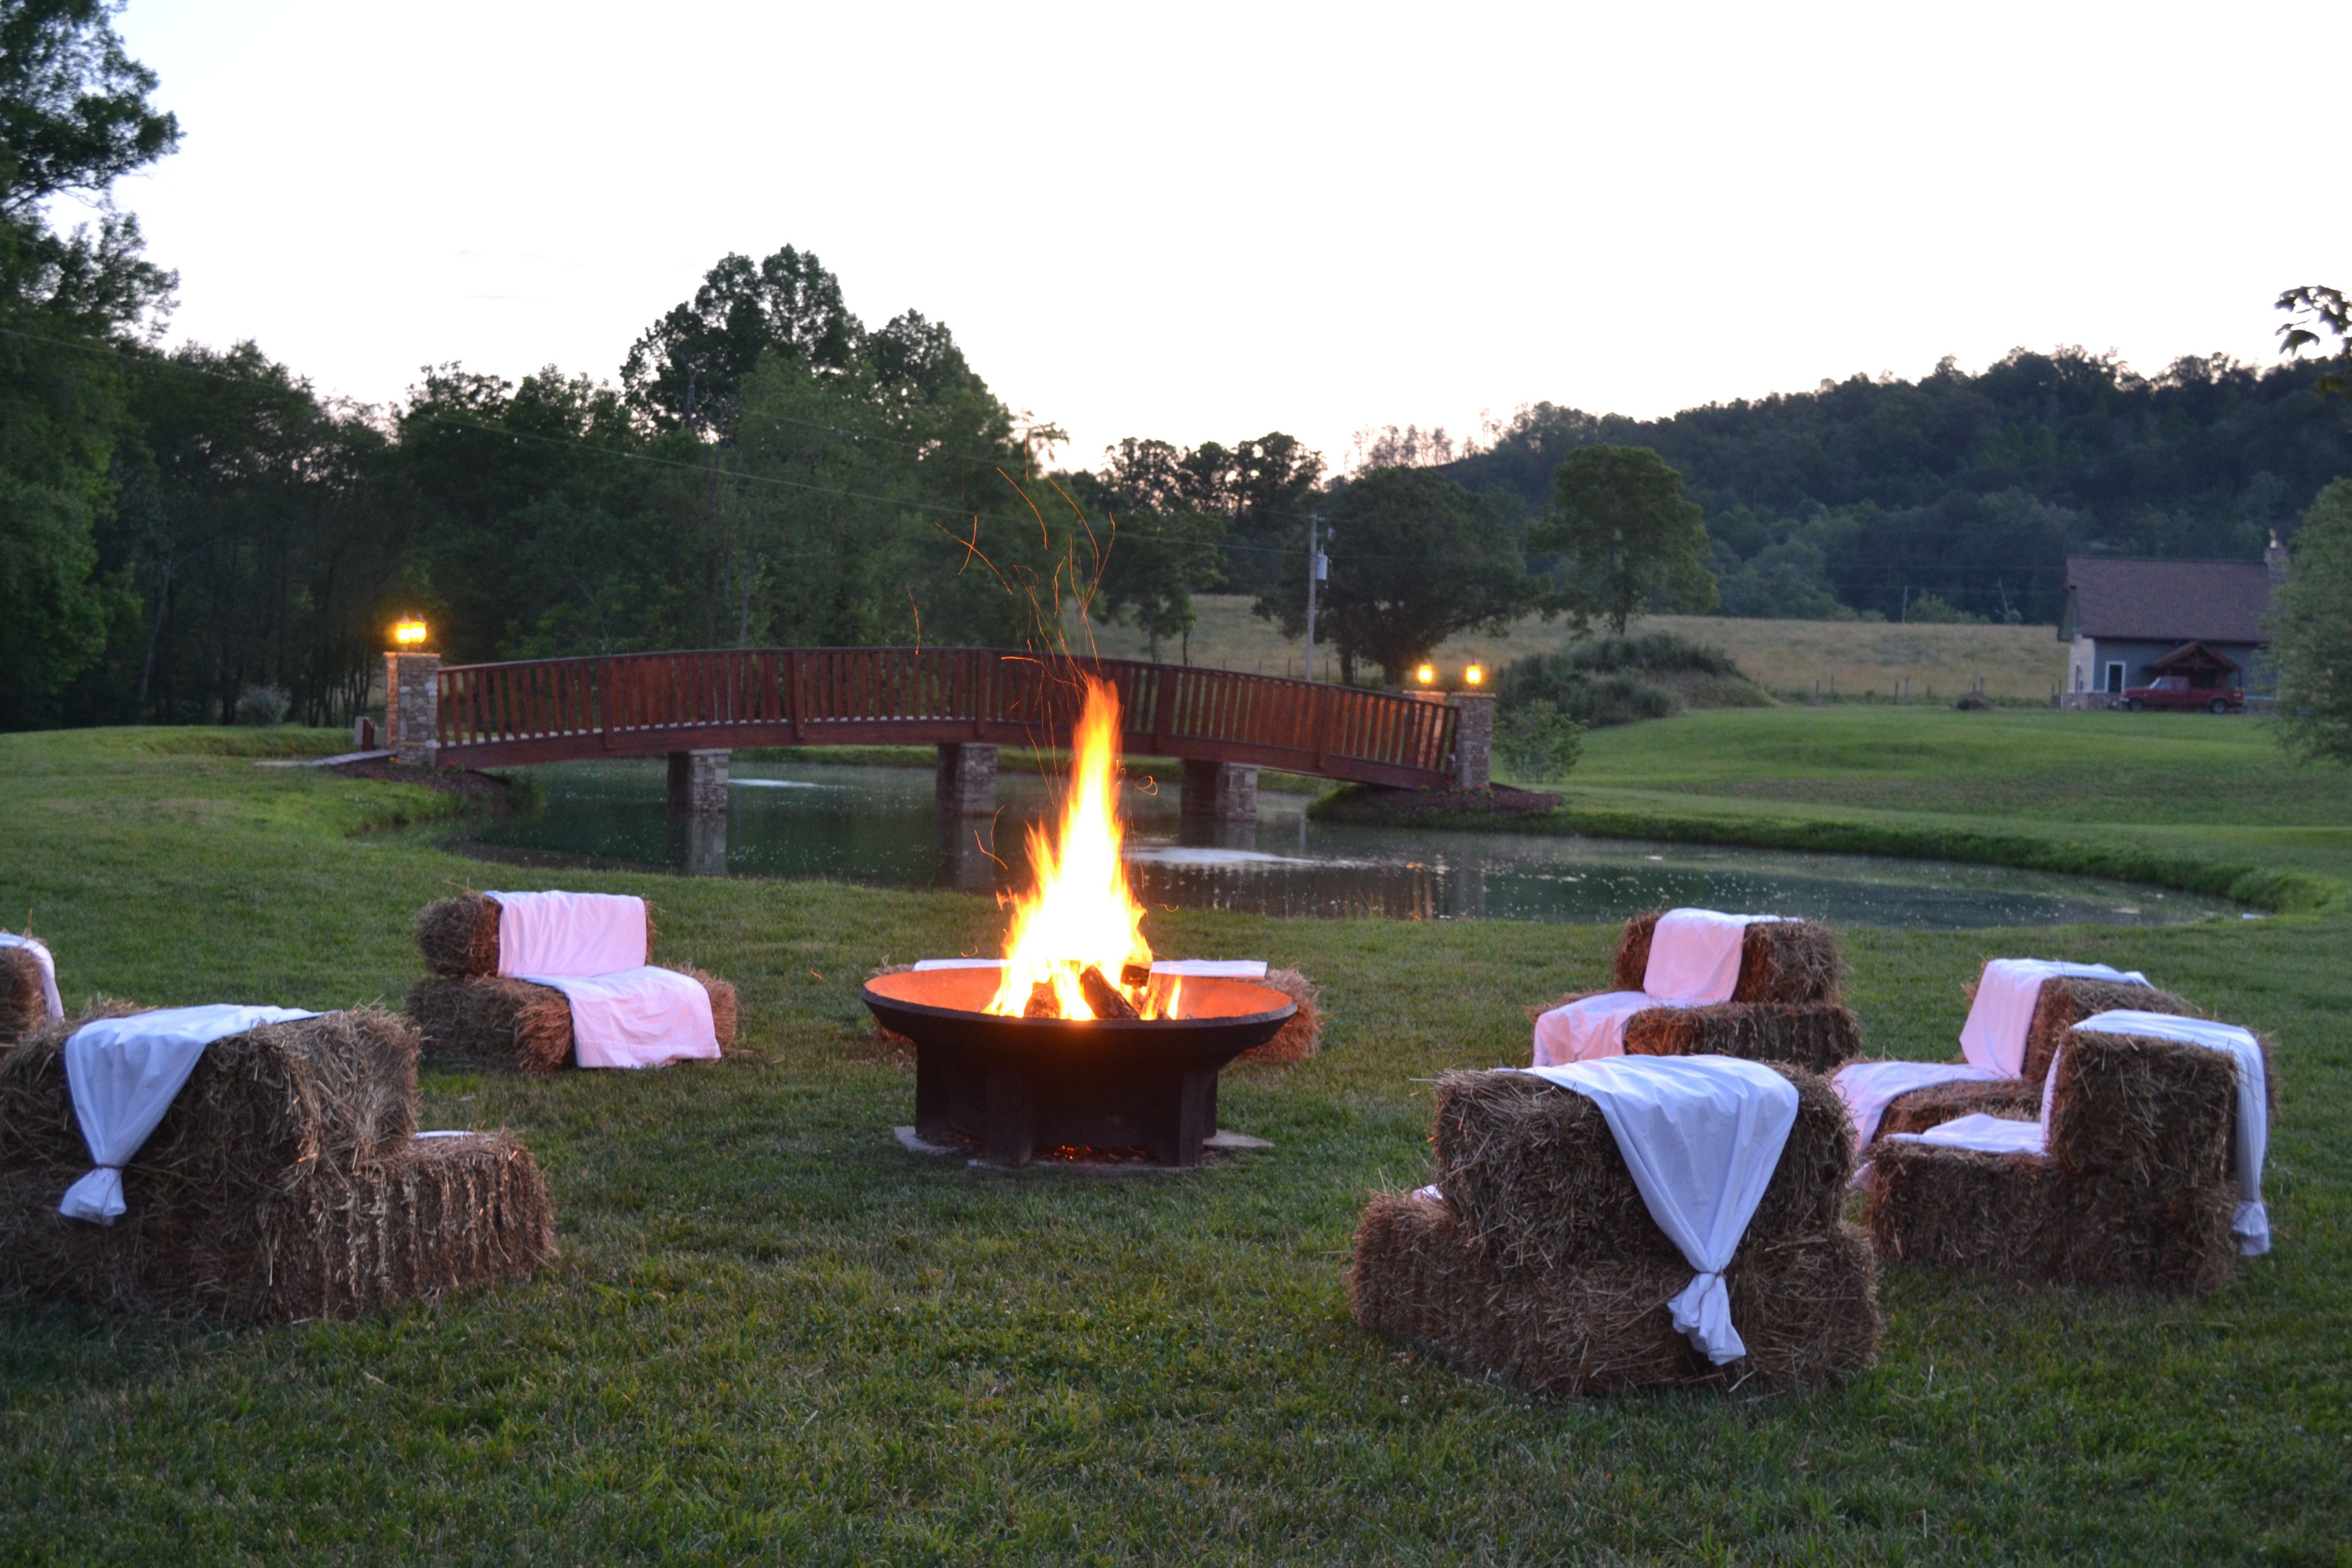 4 Fantastic Tips Can Change Your Life Rectangle Fire Pit Seating Areas Fire Pit Seating Summer Fire Pit Australia Des Fire Pit Fire Pit Decor Natural Fire Pit